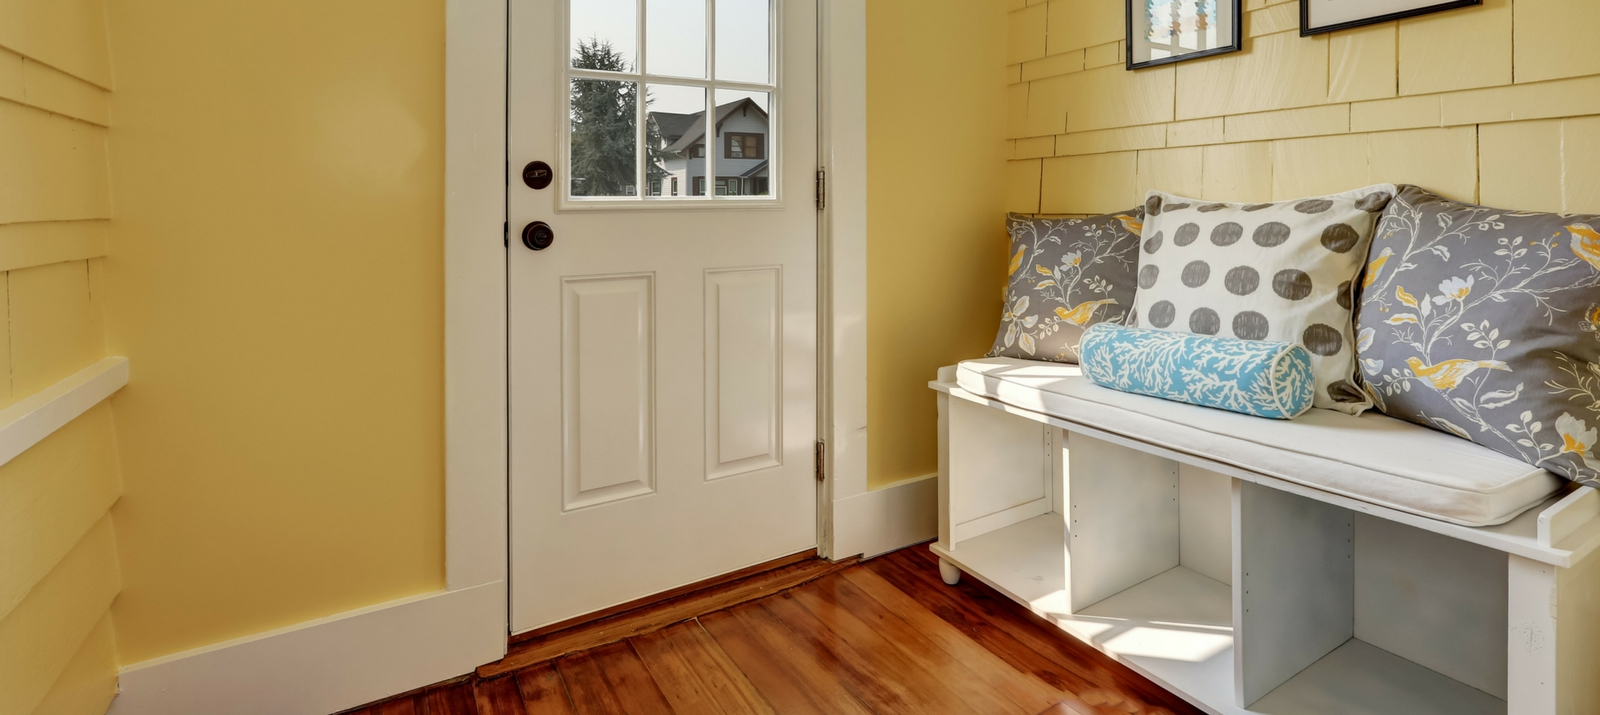 15 Amazing Entryway Storage Hacks Ideas You Ll Love